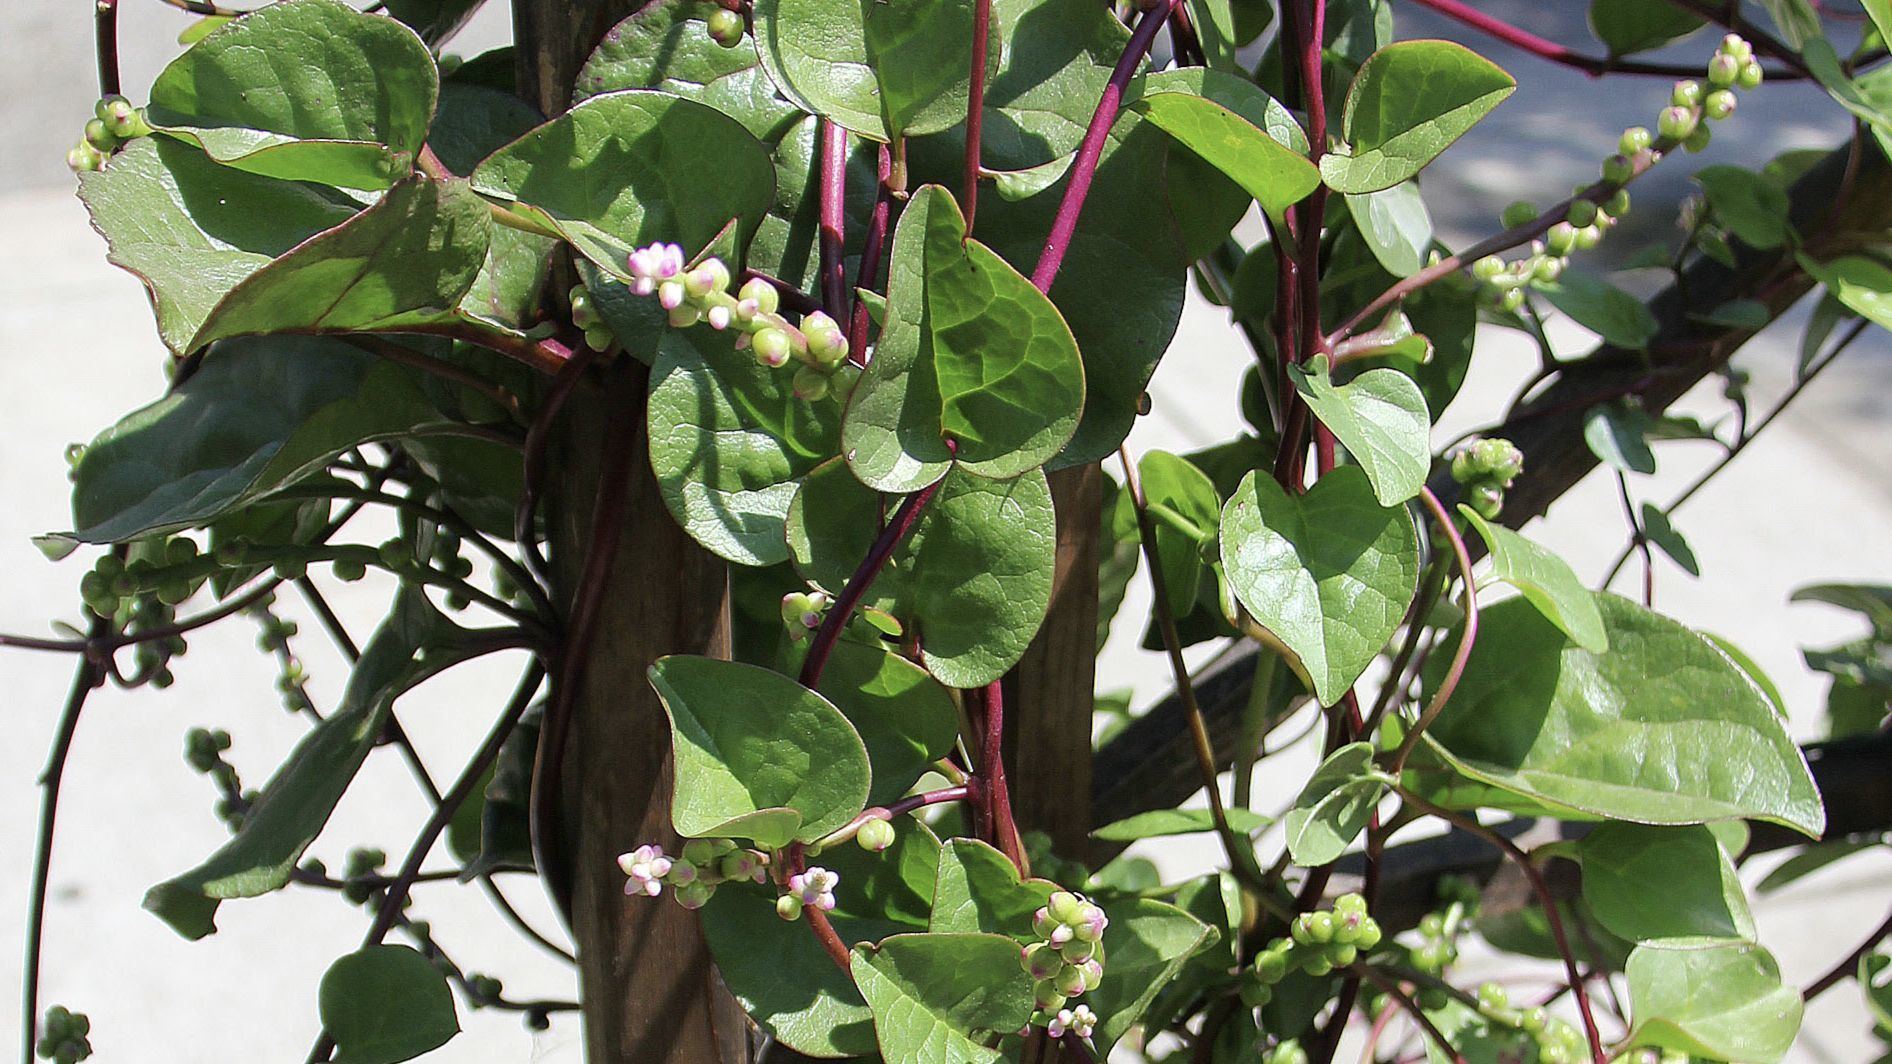 Malabar spinach is as delicious as it is showy. The white flowers turn dark purple and are a great natural dye.